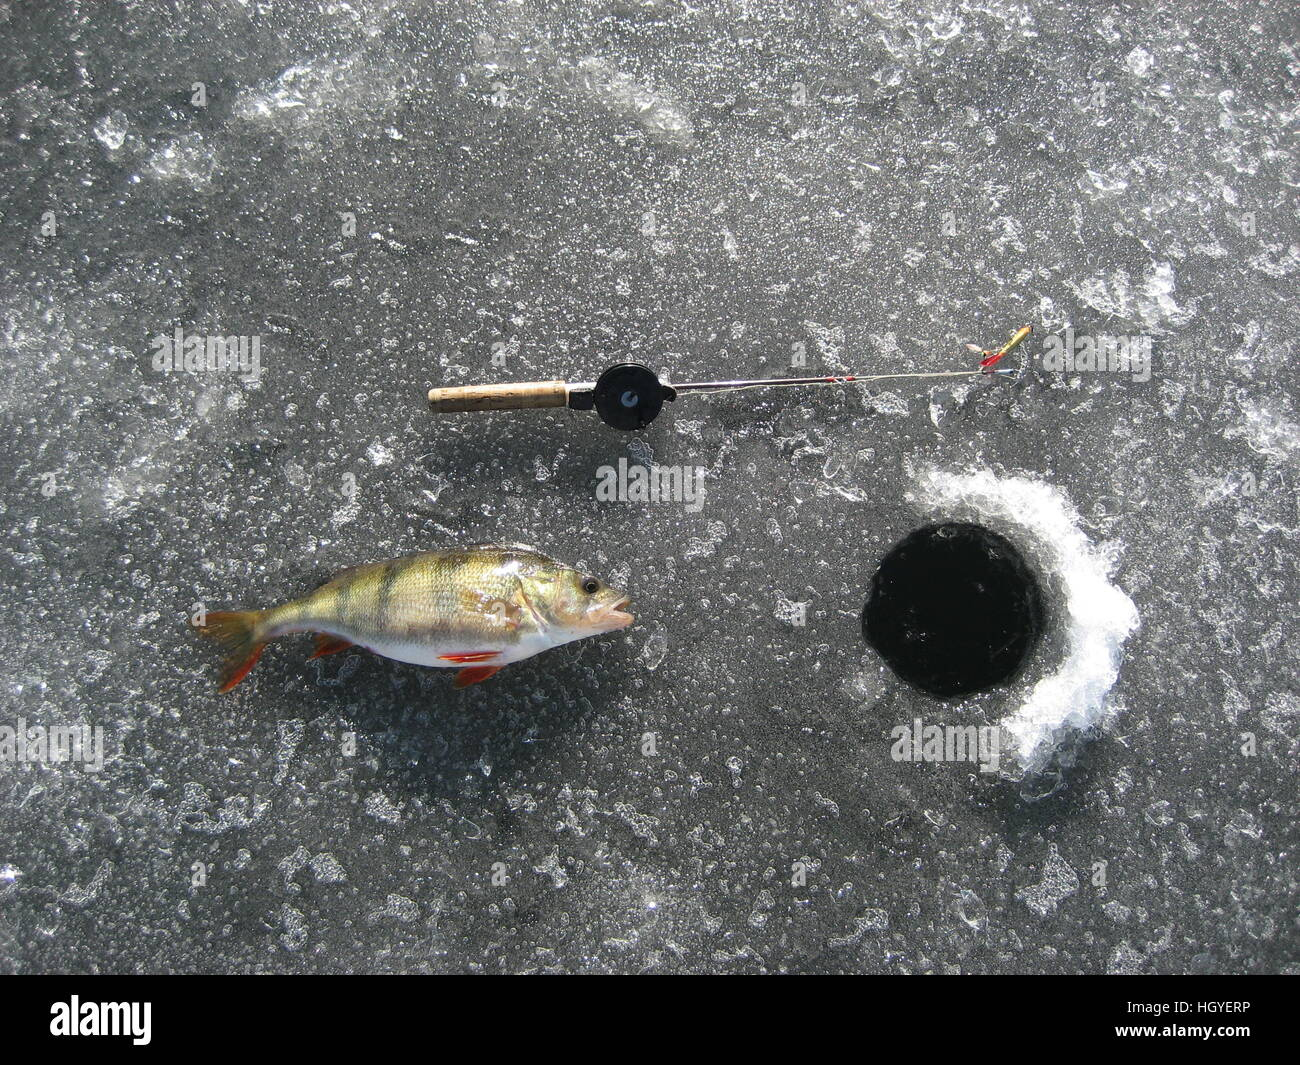 Redfin perch stock photos redfin perch stock images alamy for Ice fishing for perch